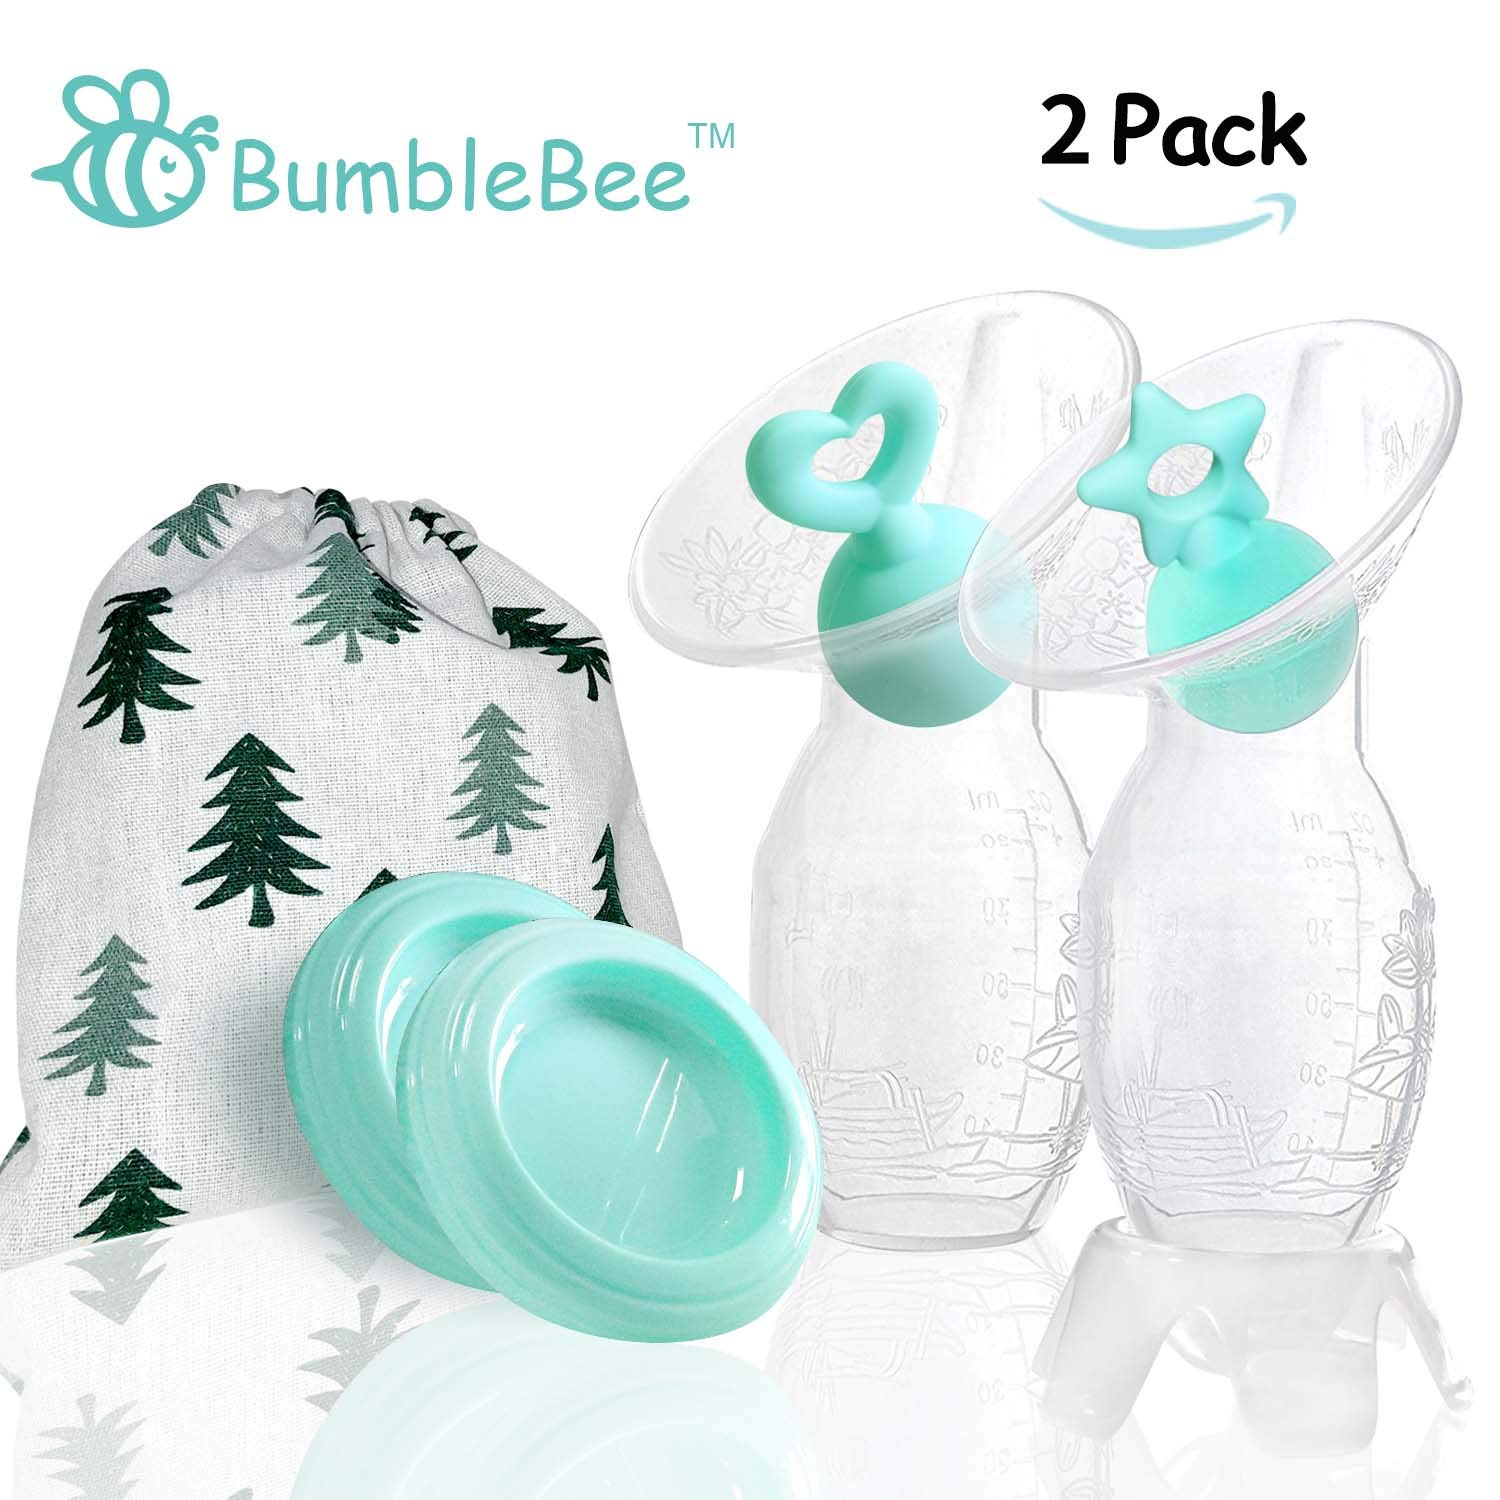 Bumblebee Manual Breast Pump with 2 Pack Breastfeeding Milk Saver Green Star &Heart Stopper& lid in Gift Box Breastpump 100% Food Grade Silicone bpa PVC and Phthalate Free